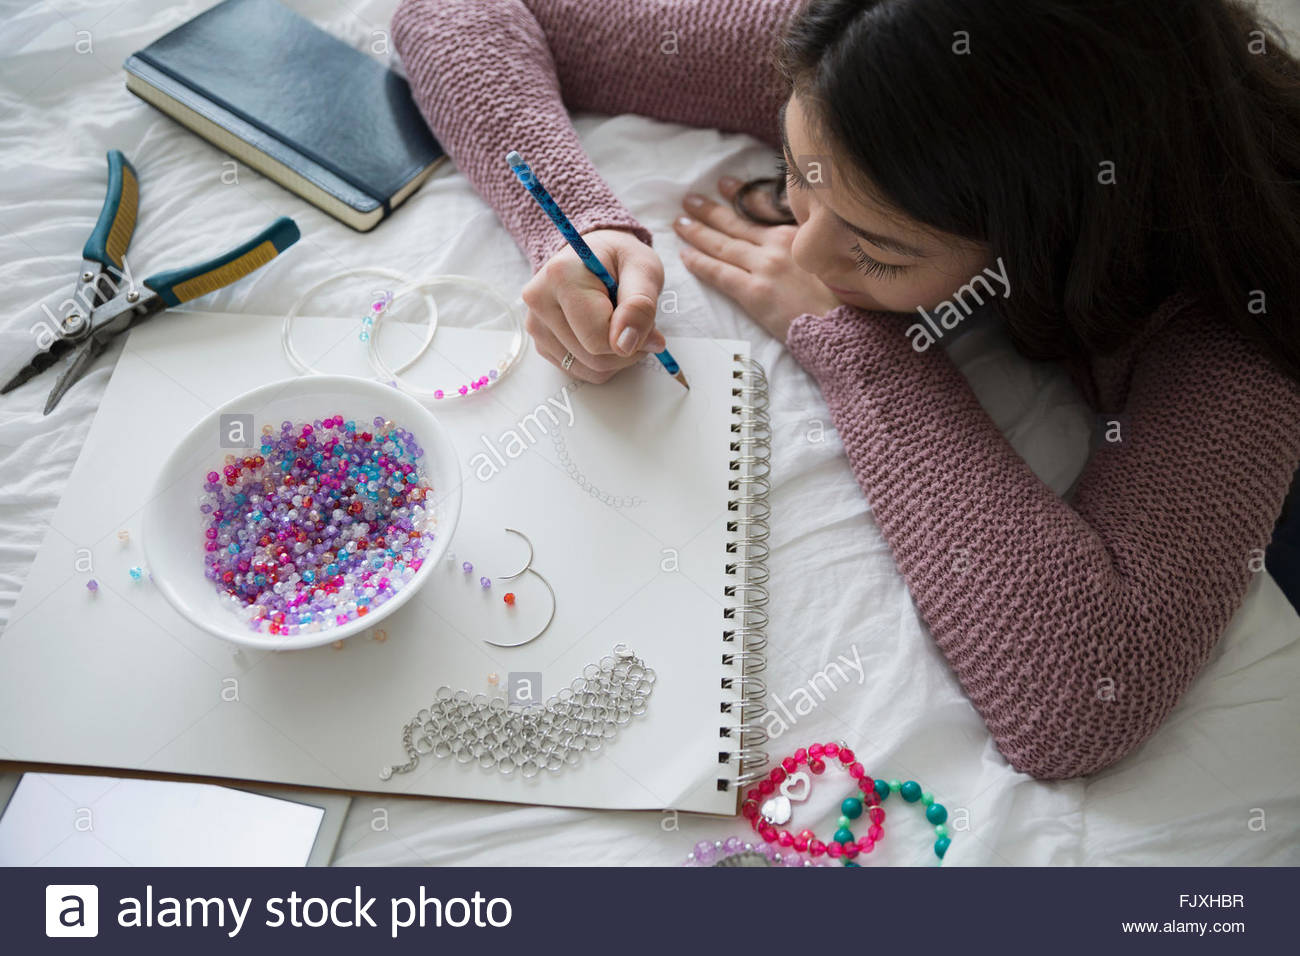 Teenage girl sketching and making jewelry - Stock Image